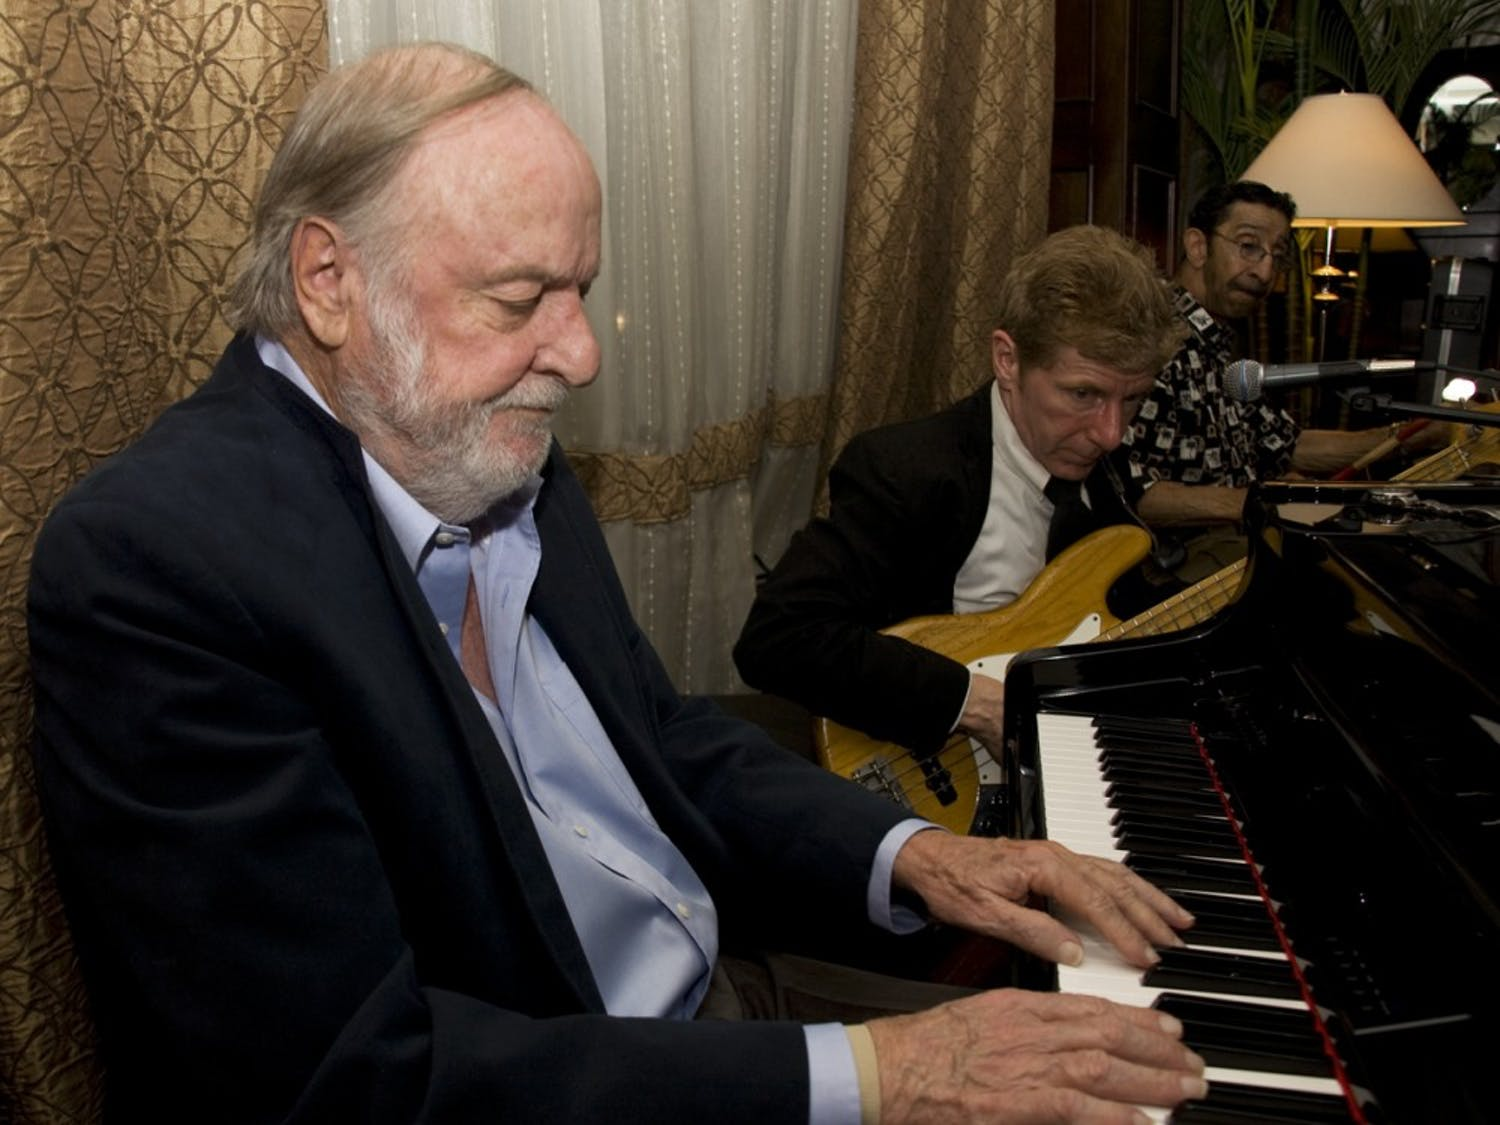 Pianist Jim Crisp plays with bassist Rick Keena and drummer Bubba Norwood at the Franklin Hotel. A resident of Chapel Hill since the 1960s, Crisp and his trio have been holding sway Wednesday at the Franklin for the past four years.